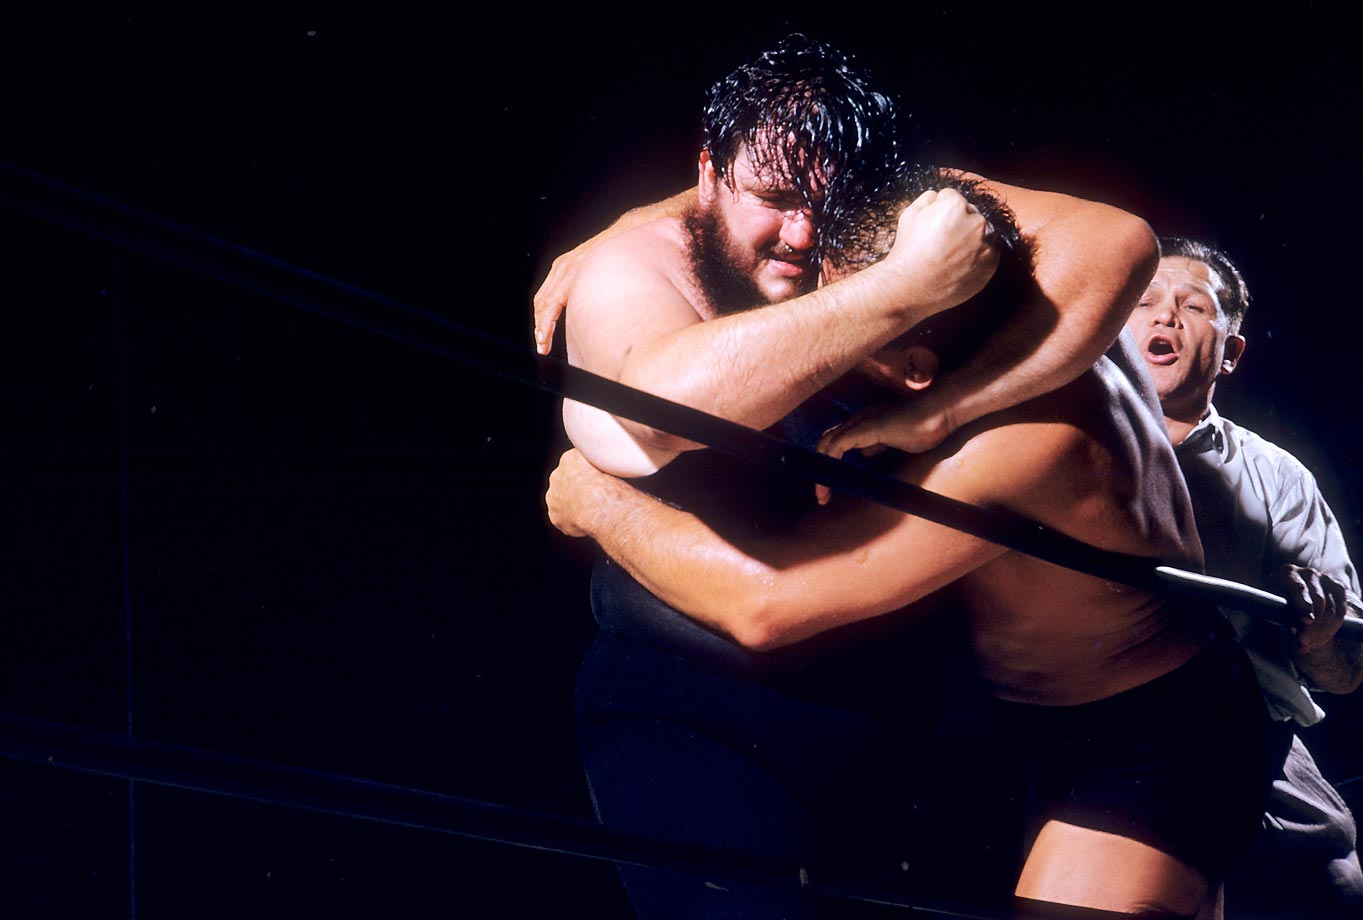 Man Mountain Dean Jr. (left) against Sandor Szabo.